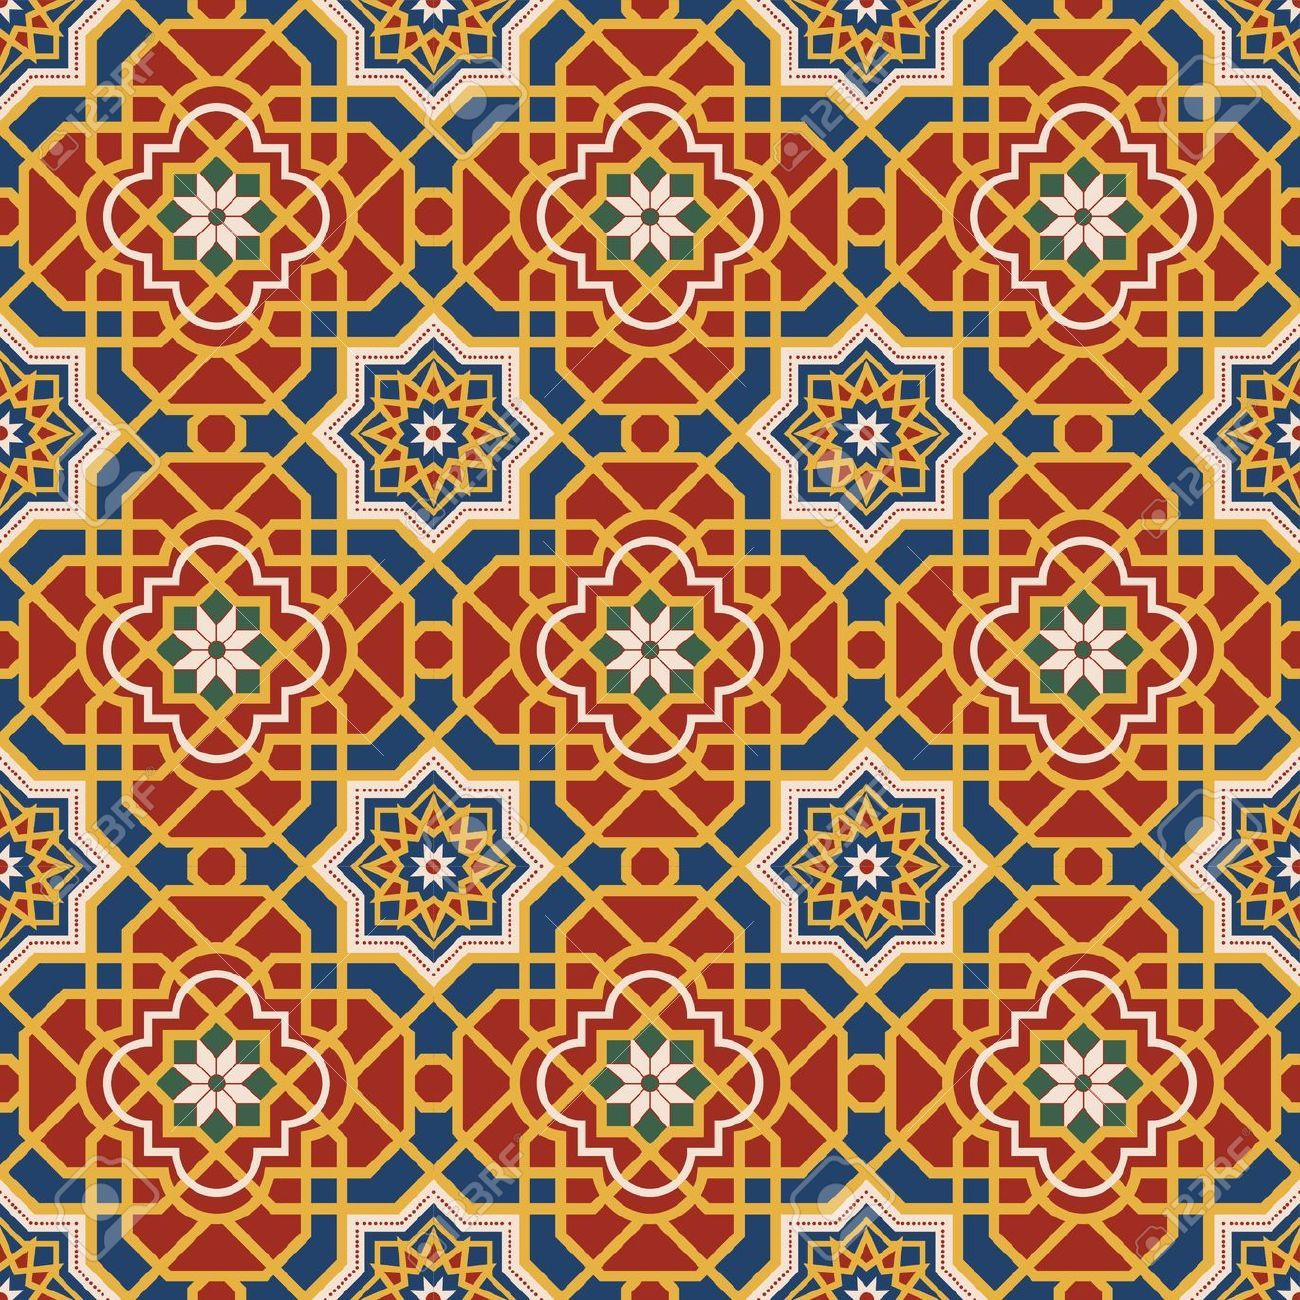 Explore Geometric Patterns, Islamic Patterns, and more!